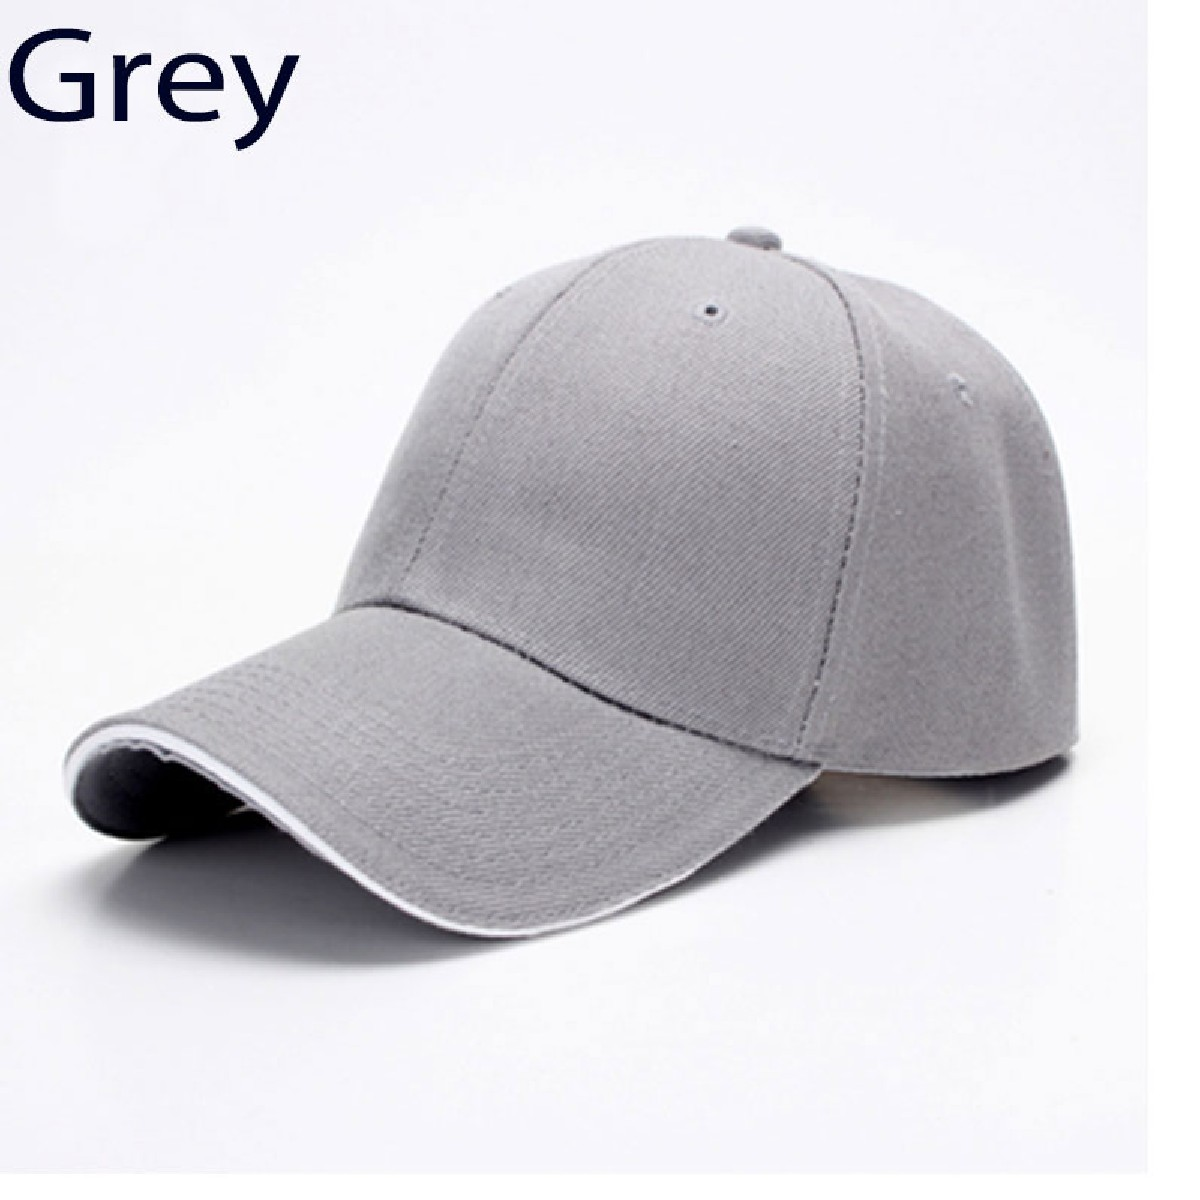 Baseball Adults P Caps With Curved Brim For Men Hats for Unisex With Adjustable Buckle